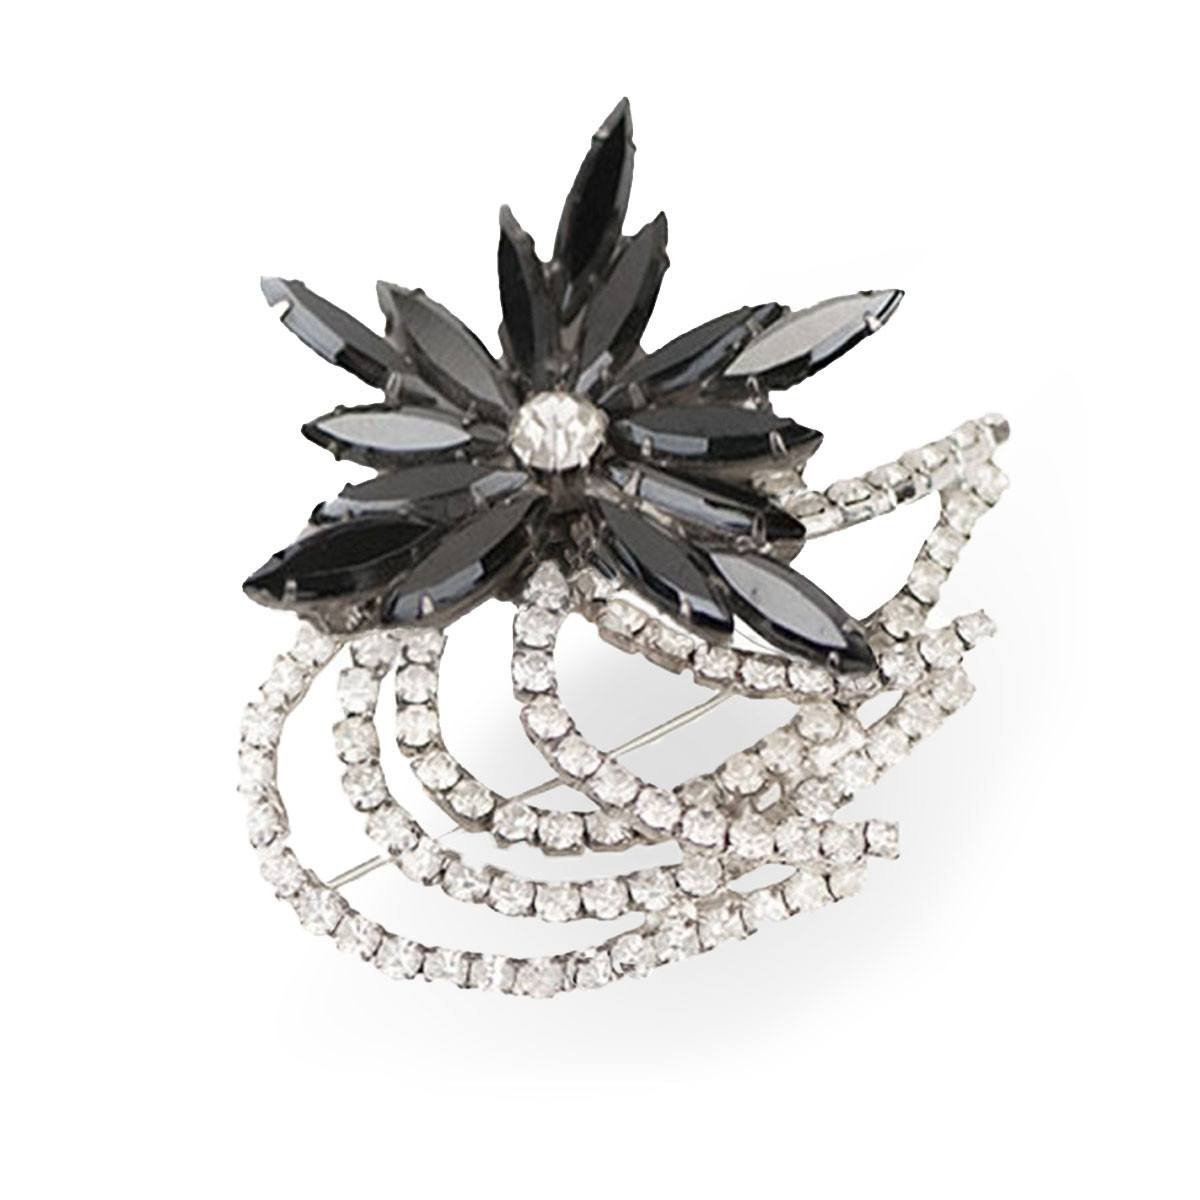 1970s Charcoal Gray Rhinestone Floral Brooch